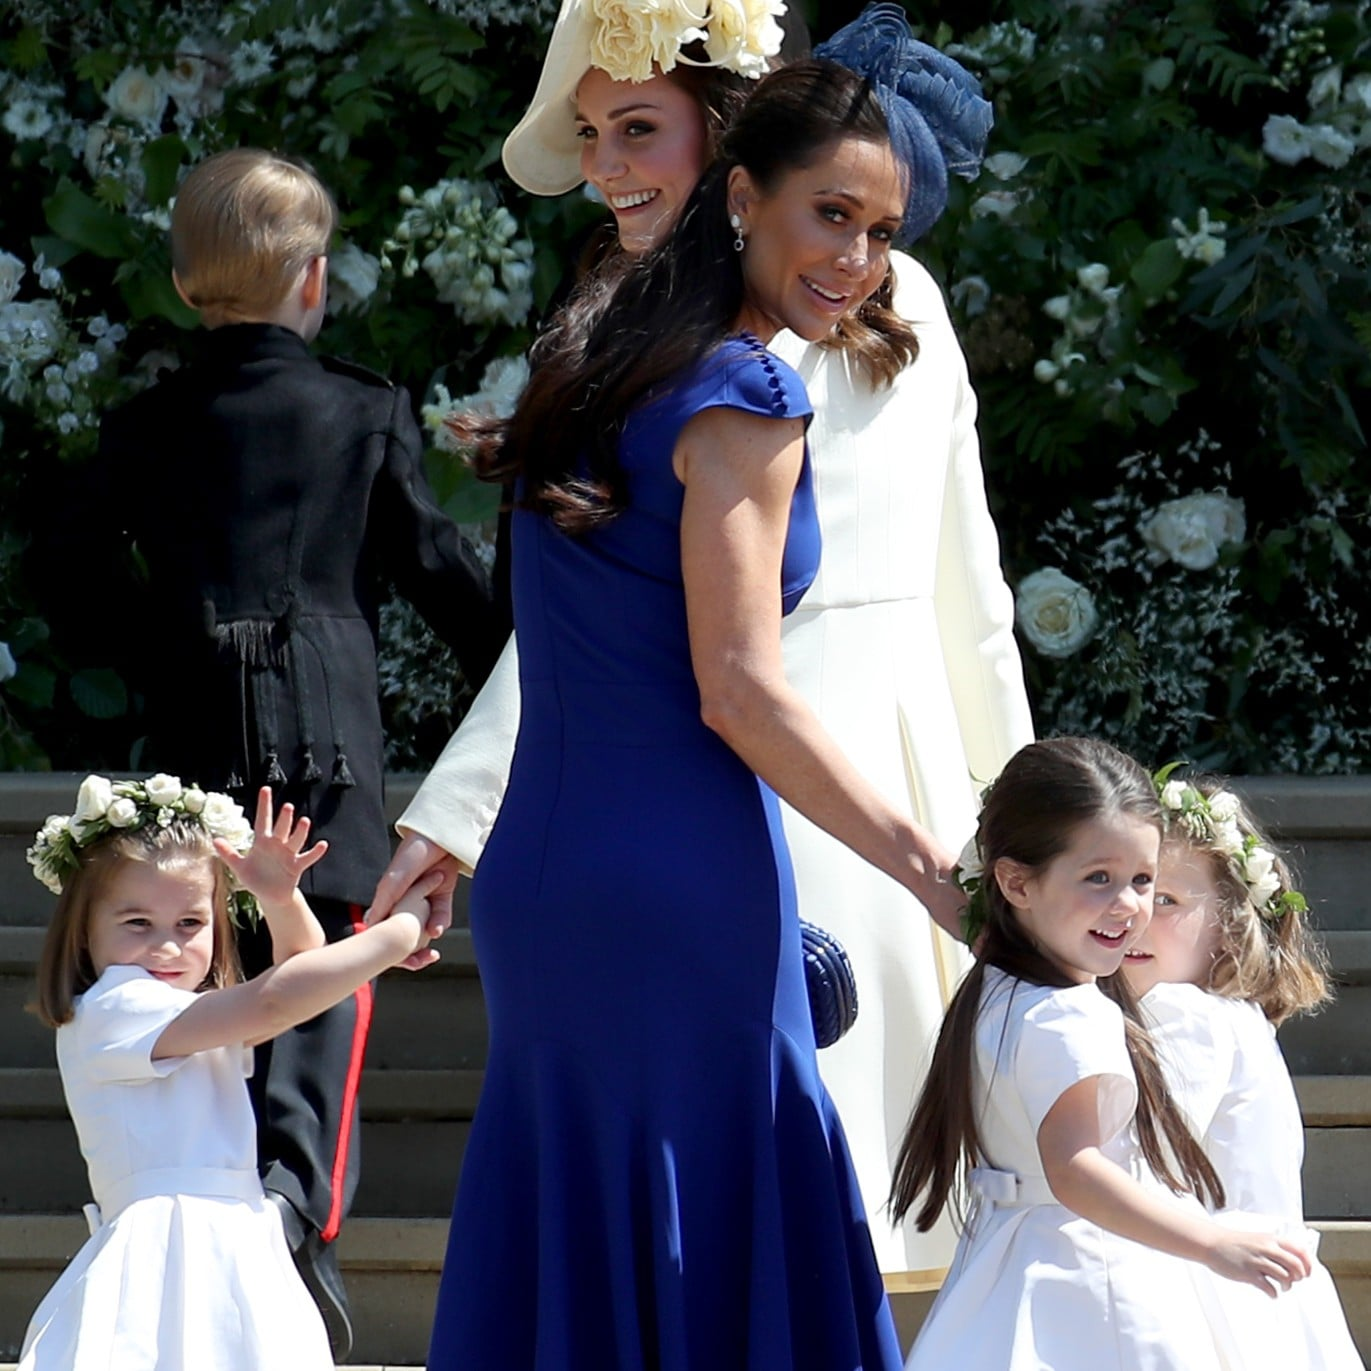 Jessica Mulroney S Blue Dress At Royal Wedding 2018 Popsugar Fashion